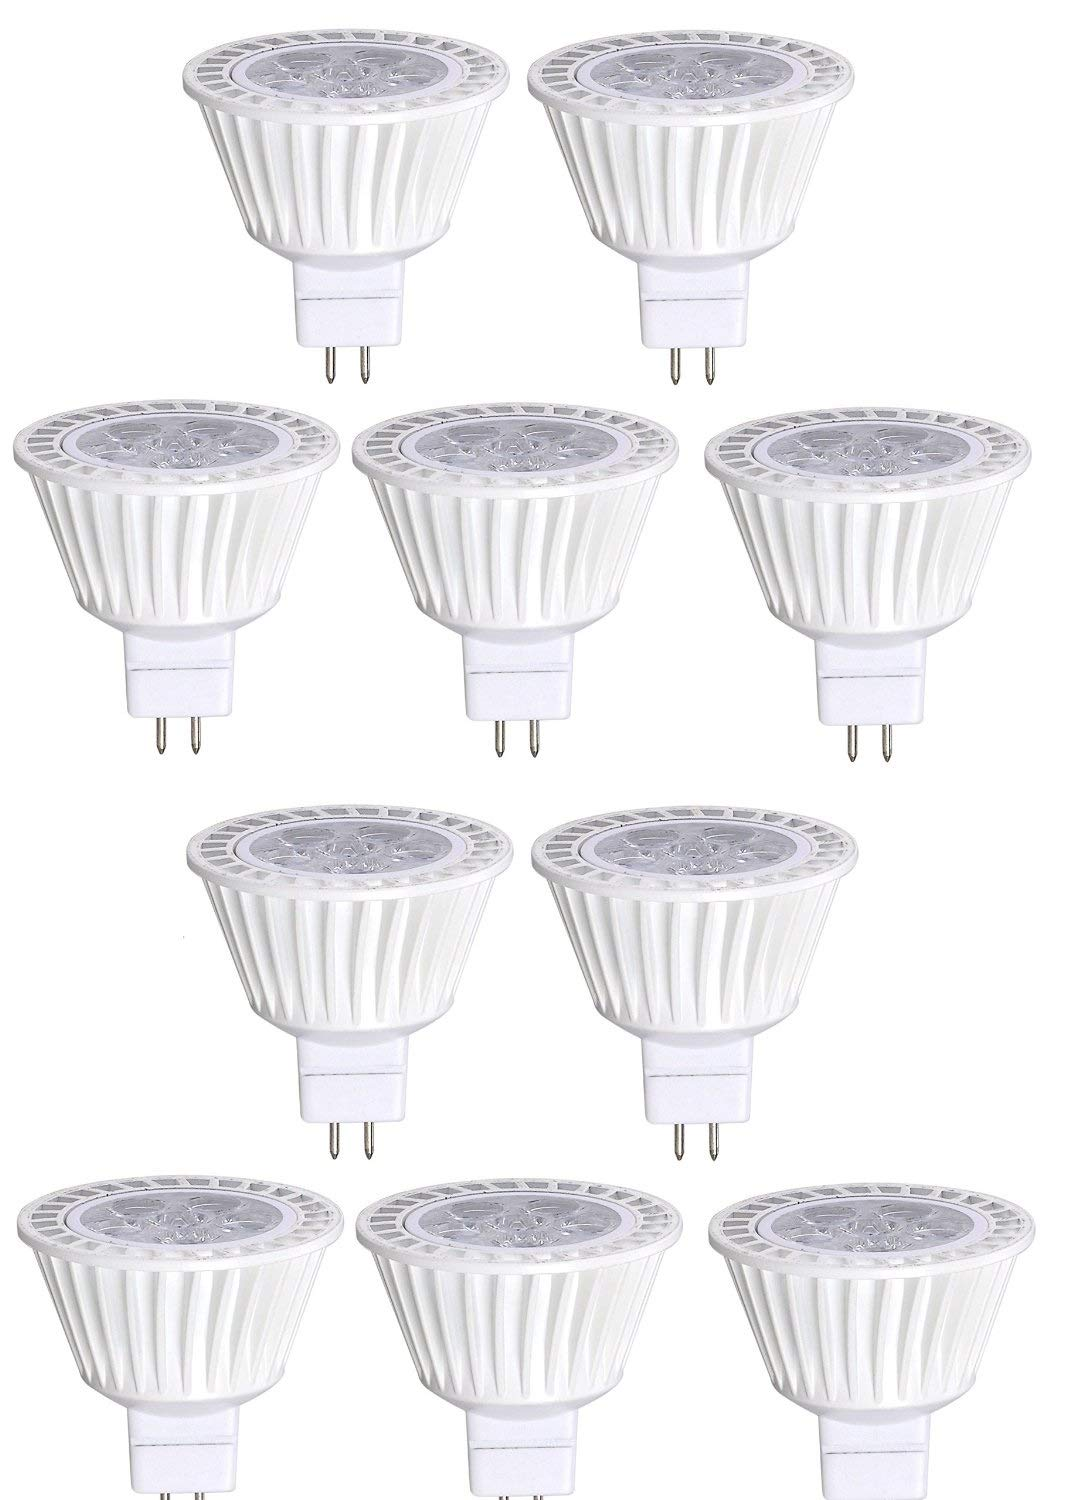 10 Pack Bioluz LED MR16 LED Bulb 50W Halogen Replacement Dimmable 7w 3000K 12v AC/DC UL Listed